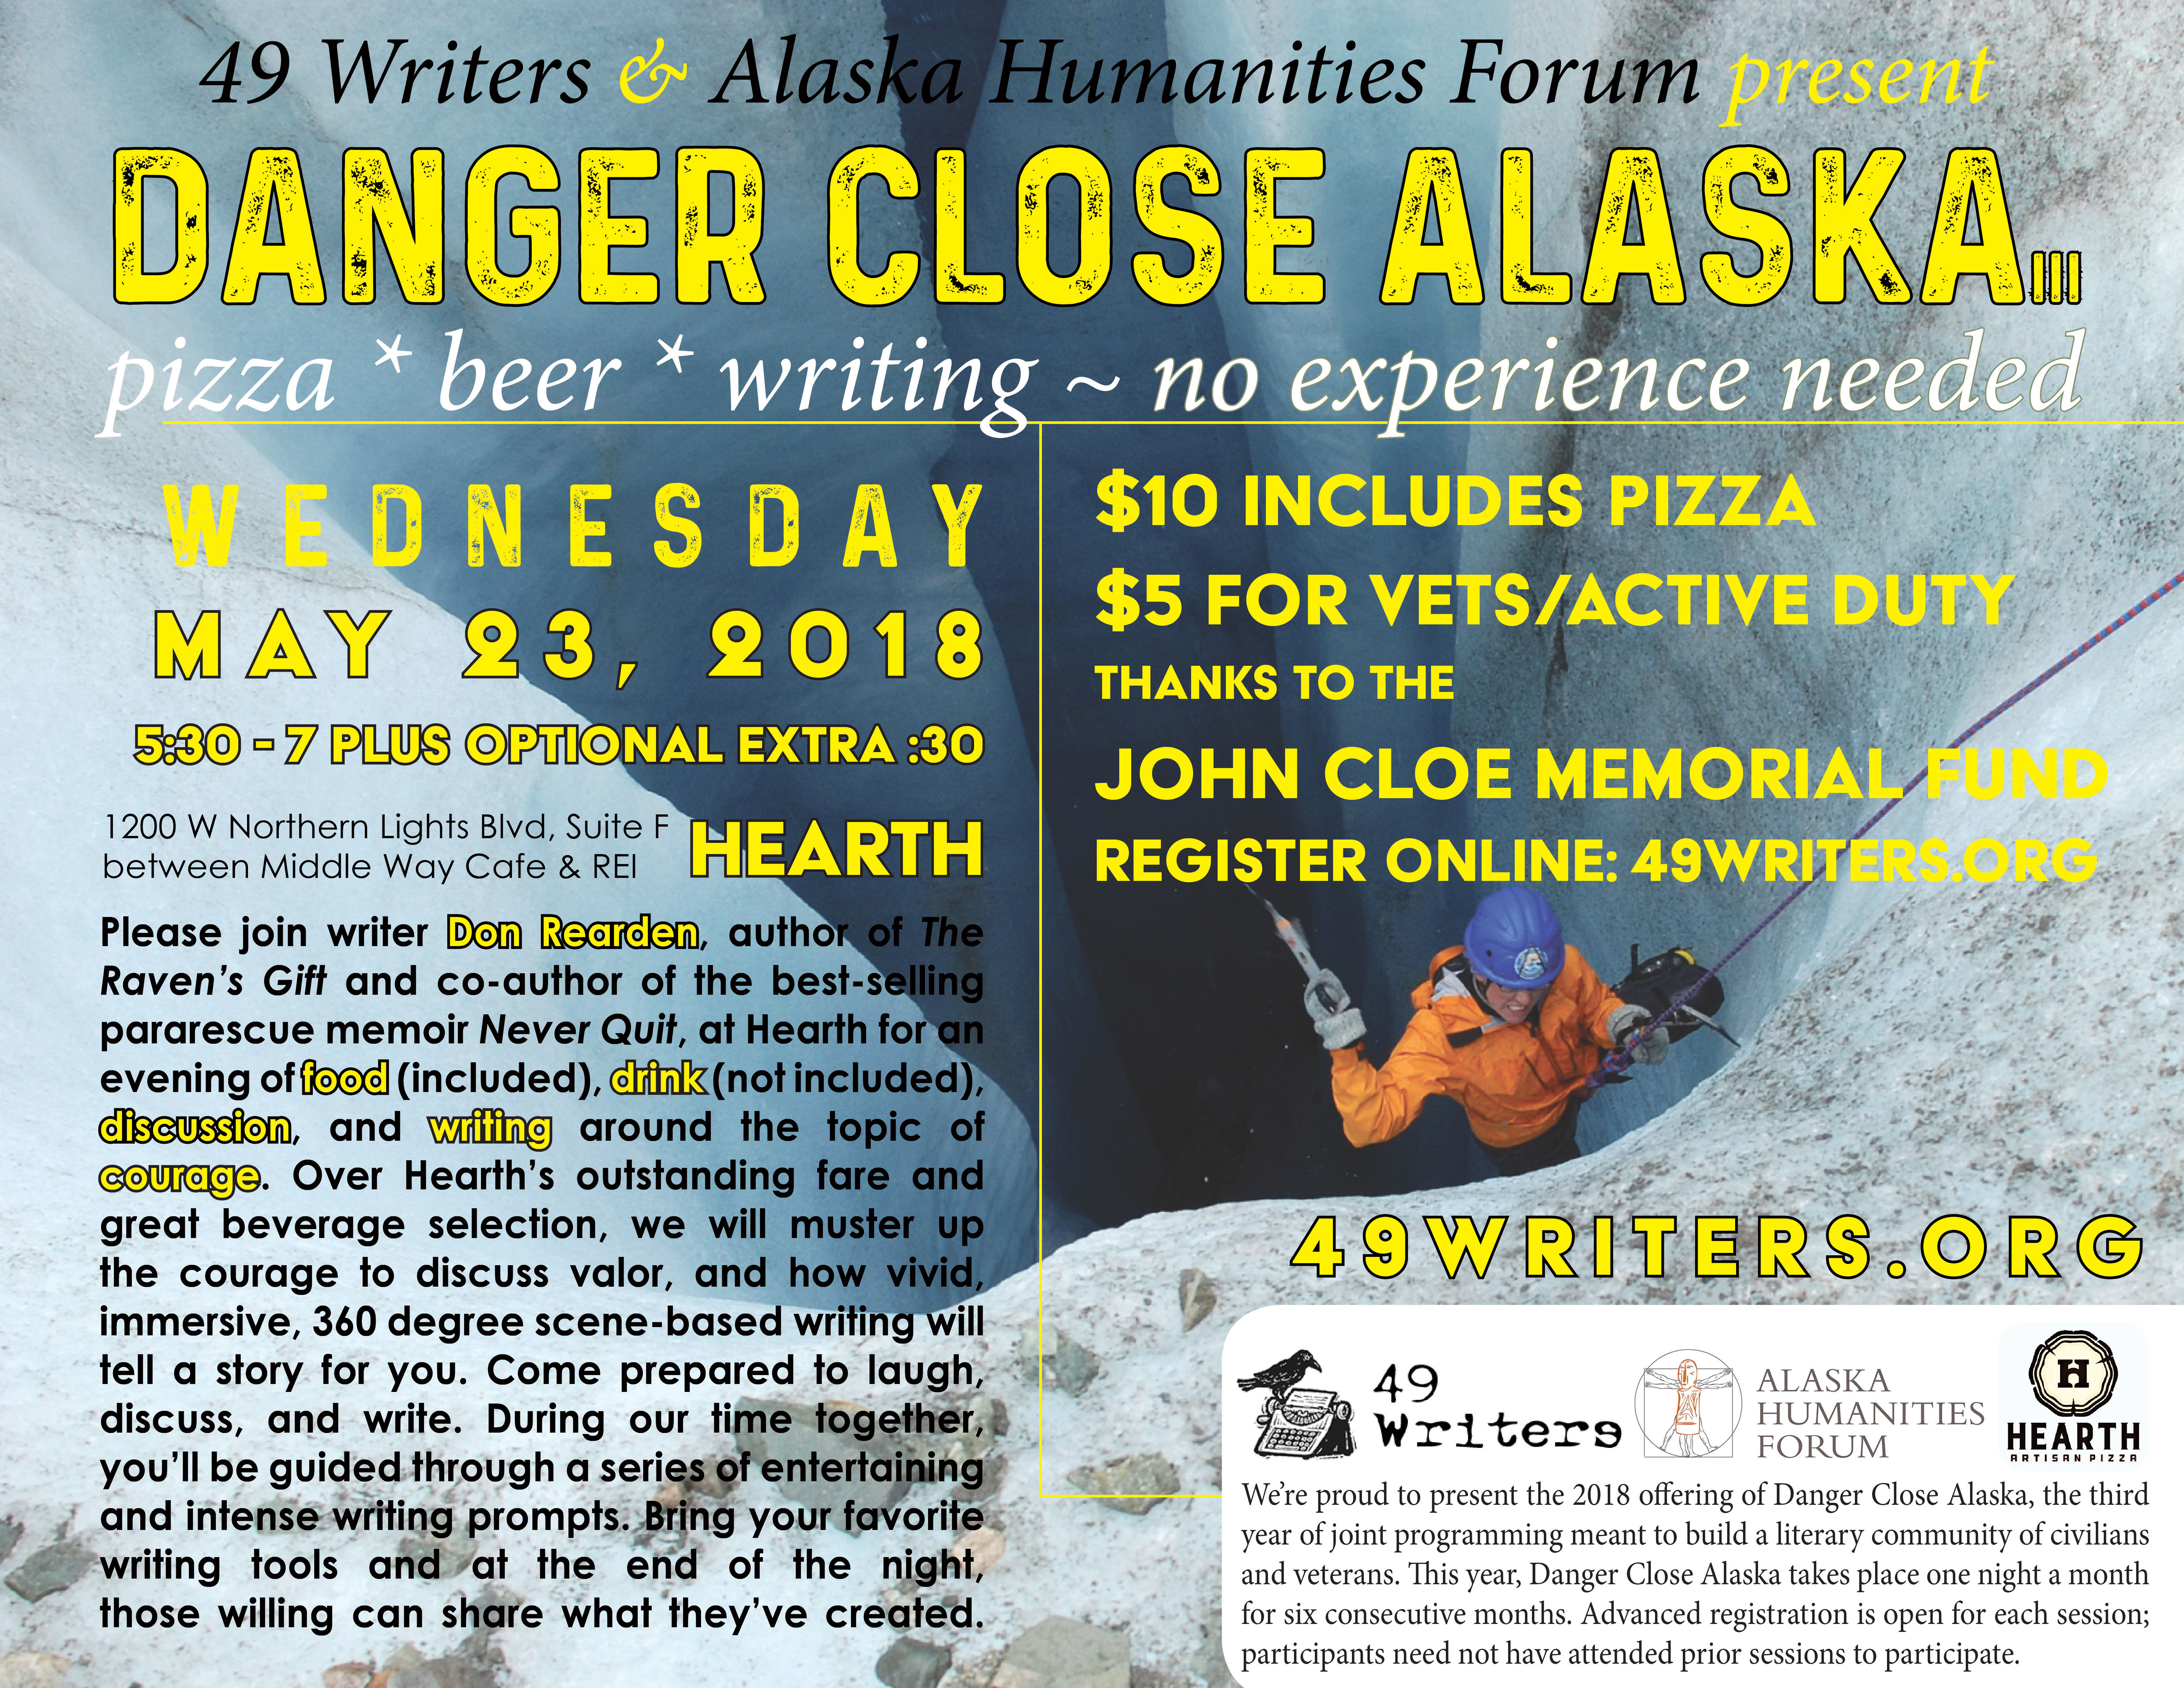 Danger Close Alaska - 49 Writers, Inc